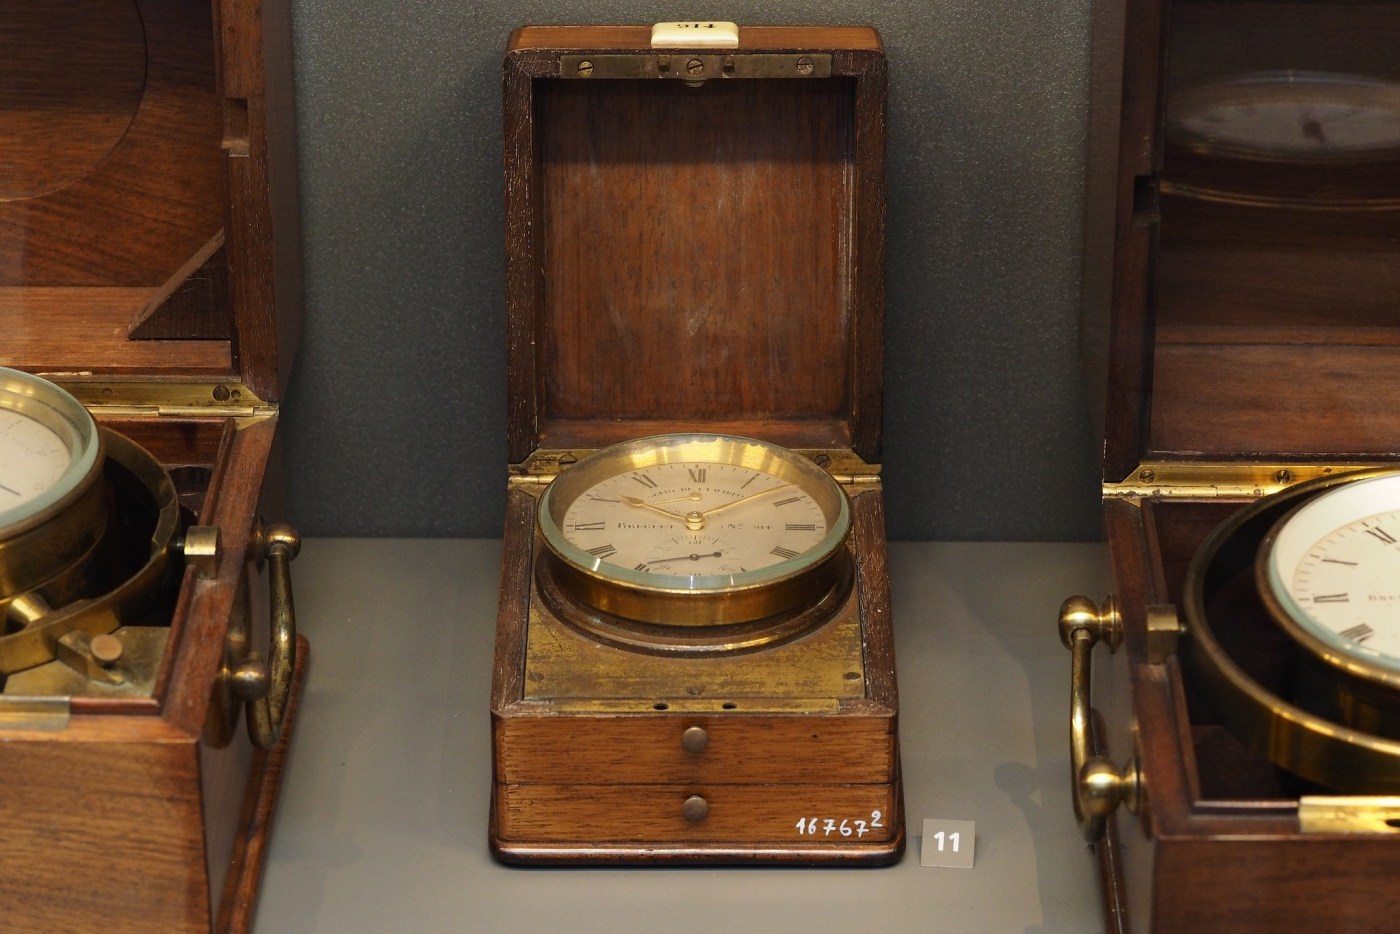 Breguet Marine Chronometer seen in Breguet Museum of Paris